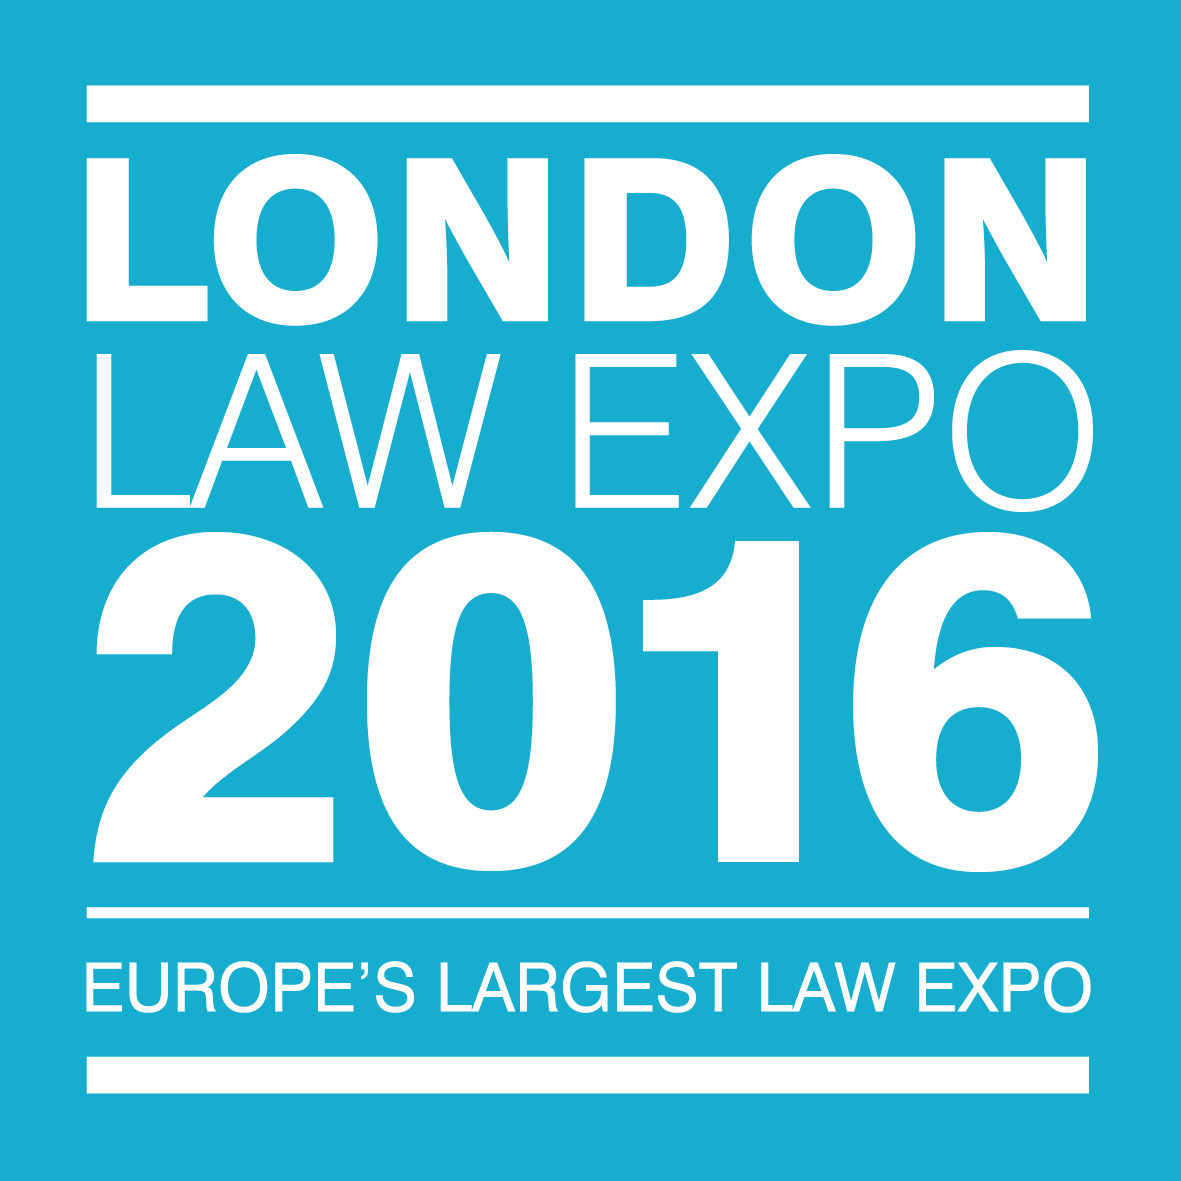 Netlaw Media - Upcoming Events - London Law Expo 2016